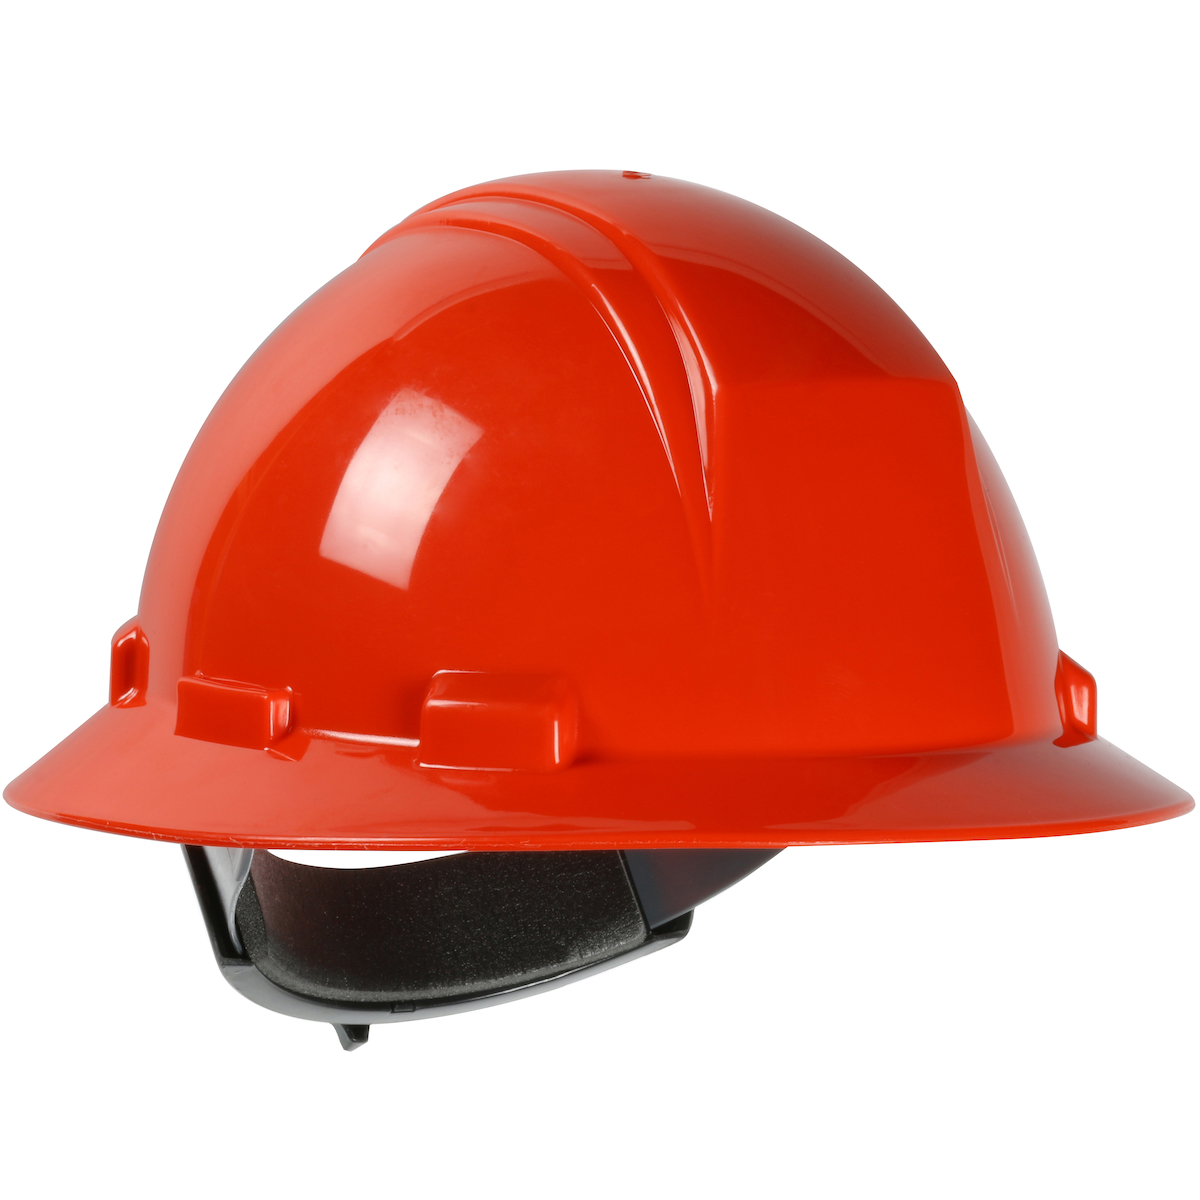 Type II Full Brim Hard Hat with HDPE Shell, 4-Point Textile Suspension and Wheel Ratchet Adjustment, Orange, OS